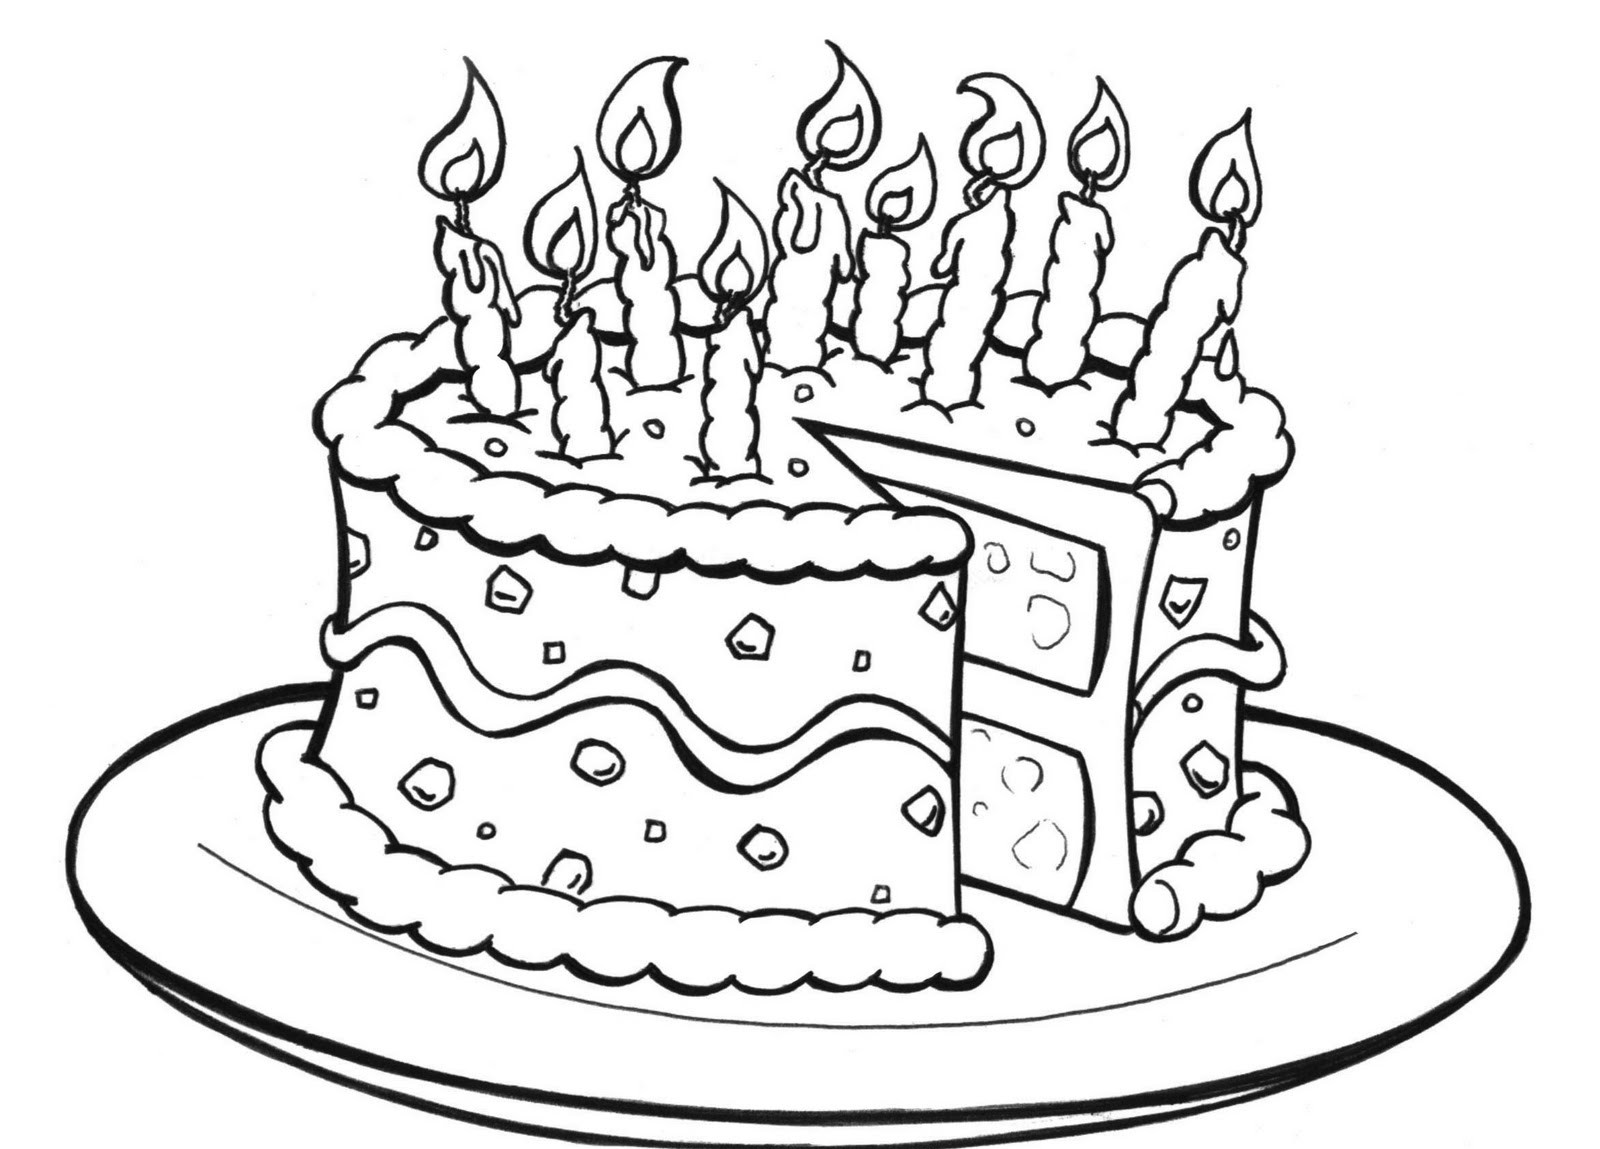 coloring pages birthday cake birthday candle coloring page at getcoloringscom free coloring pages cake birthday